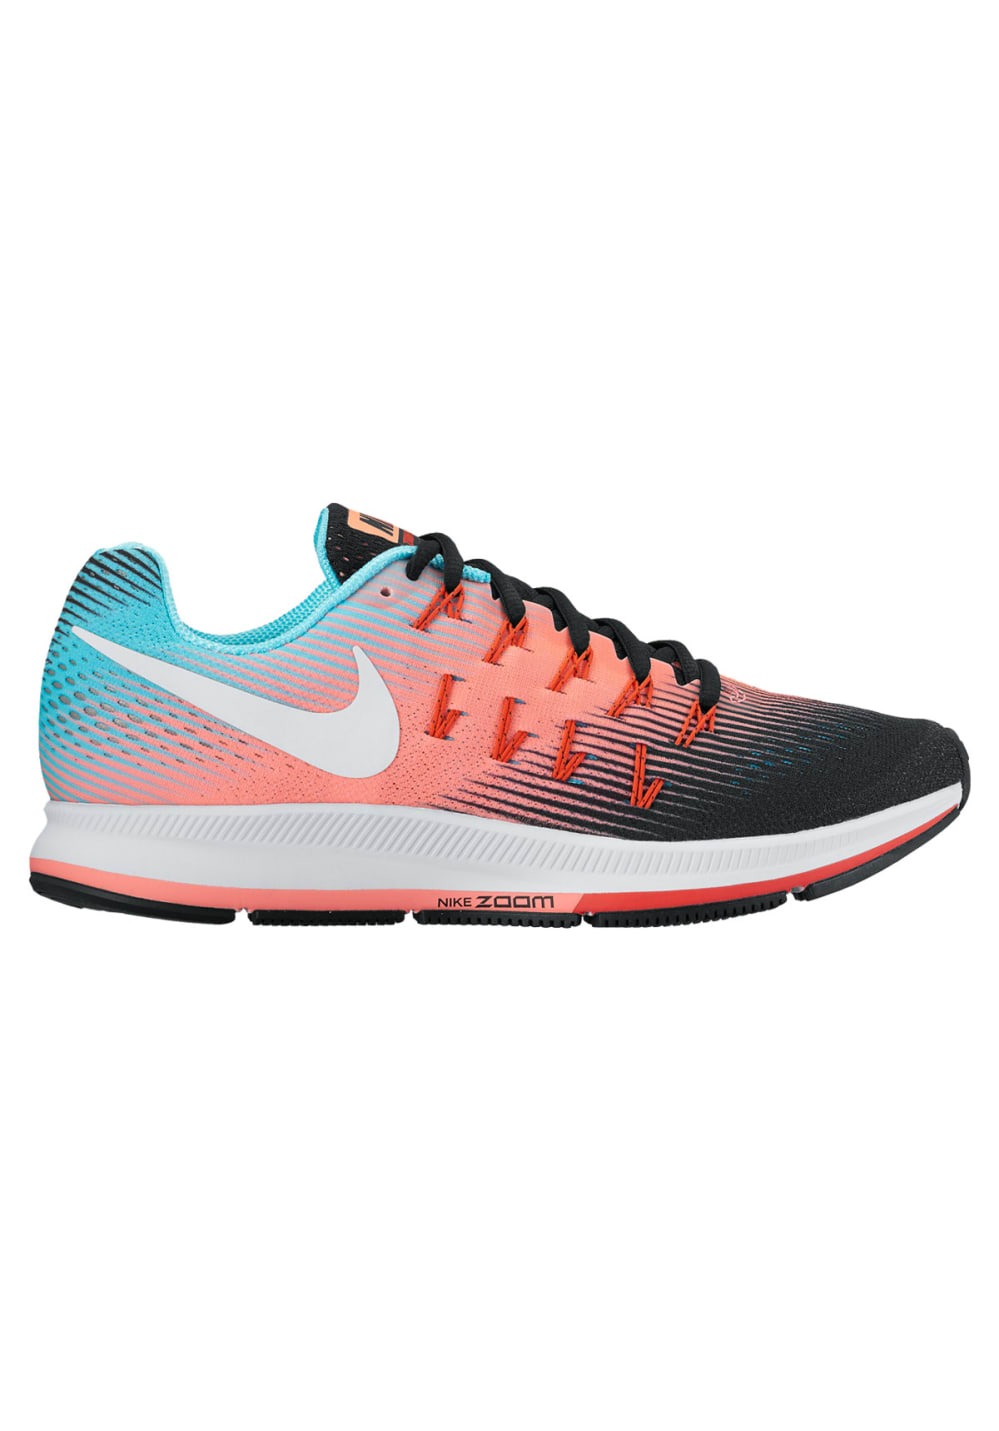 128a11873213e Next. -30%. This product is currently out of stock. Nike. Air Zoom Pegasus  33 - Running shoes for Women